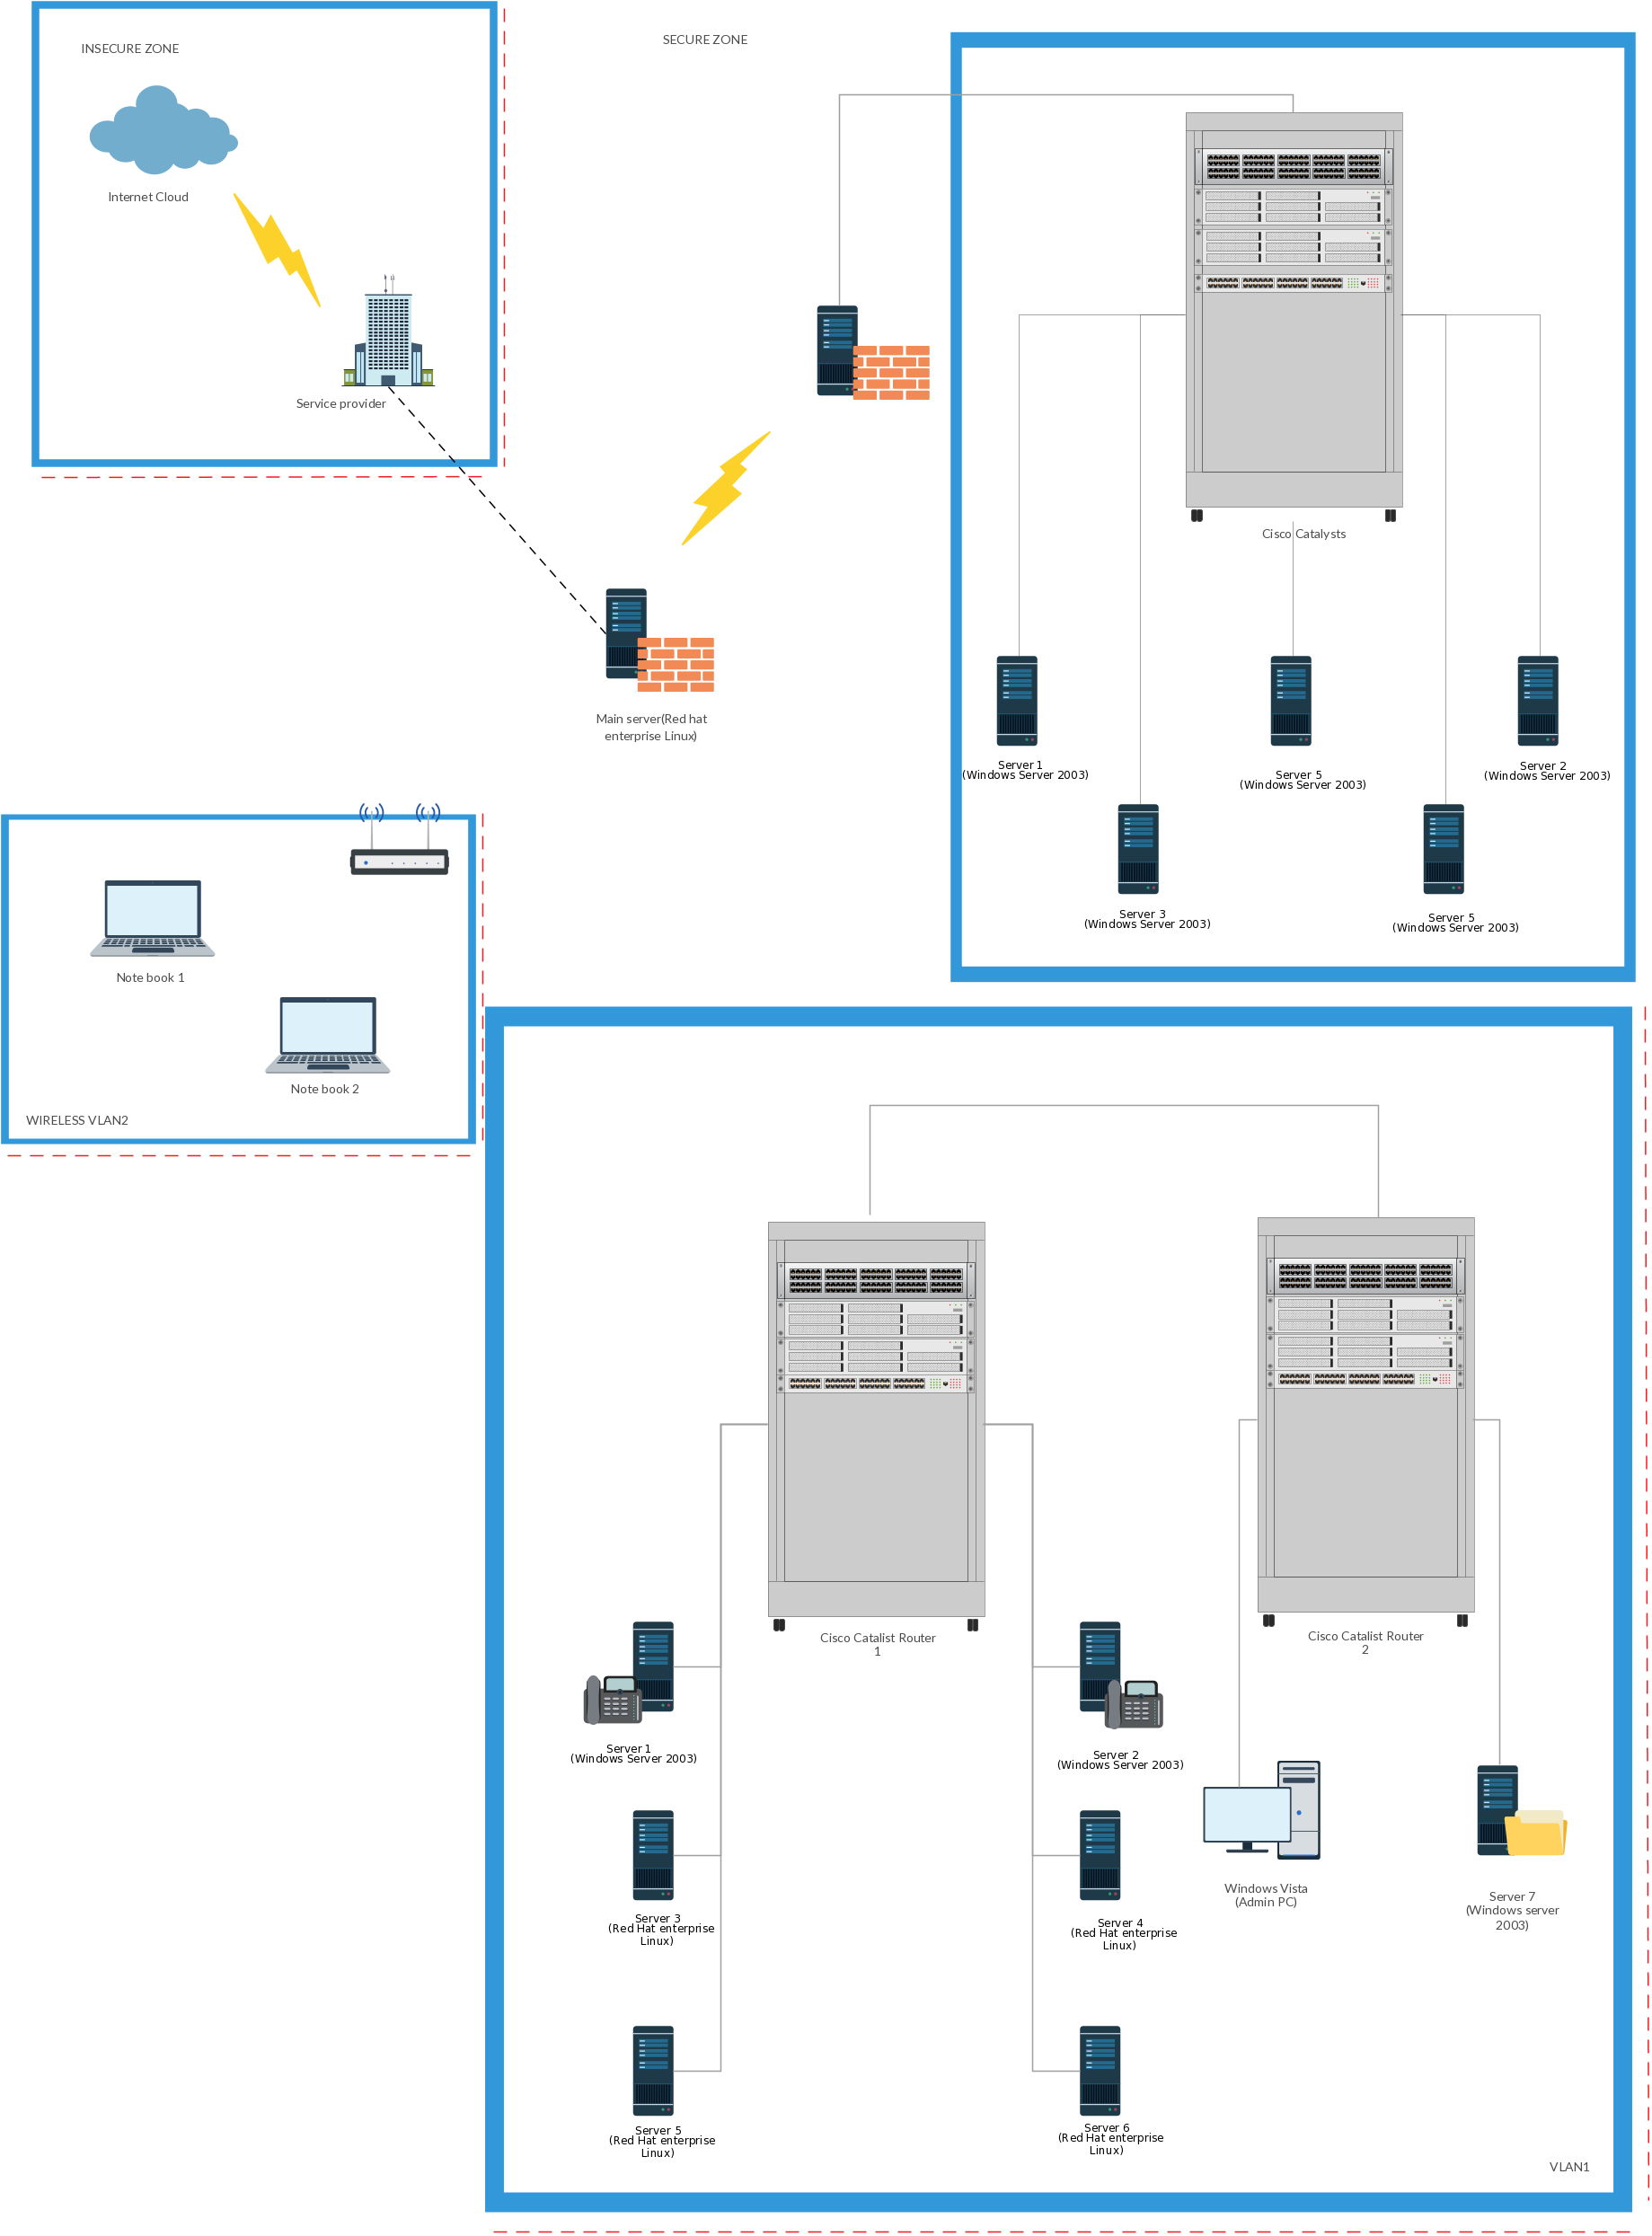 hight resolution of virtual local area network network diagram template click the image to use as a template